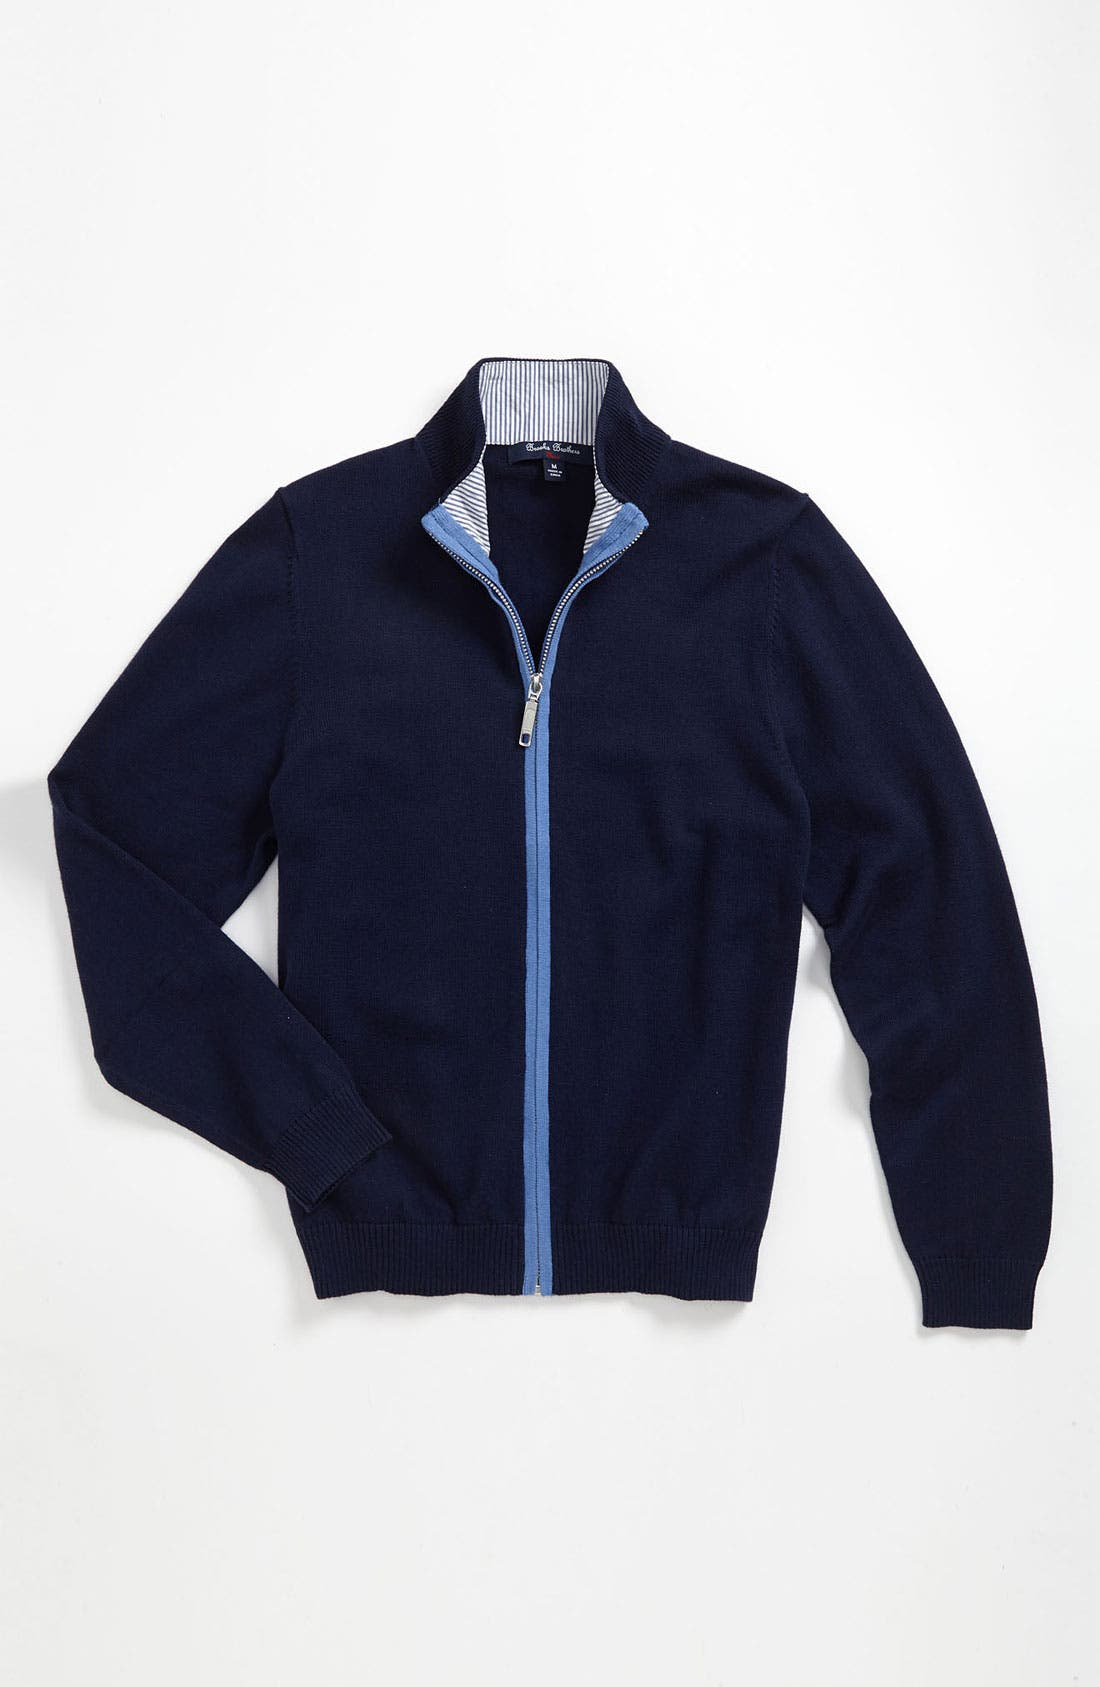 Alternate Image 1 Selected - Brooks Brothers 'Anchor' Full Zip Sweater (Big Boys)